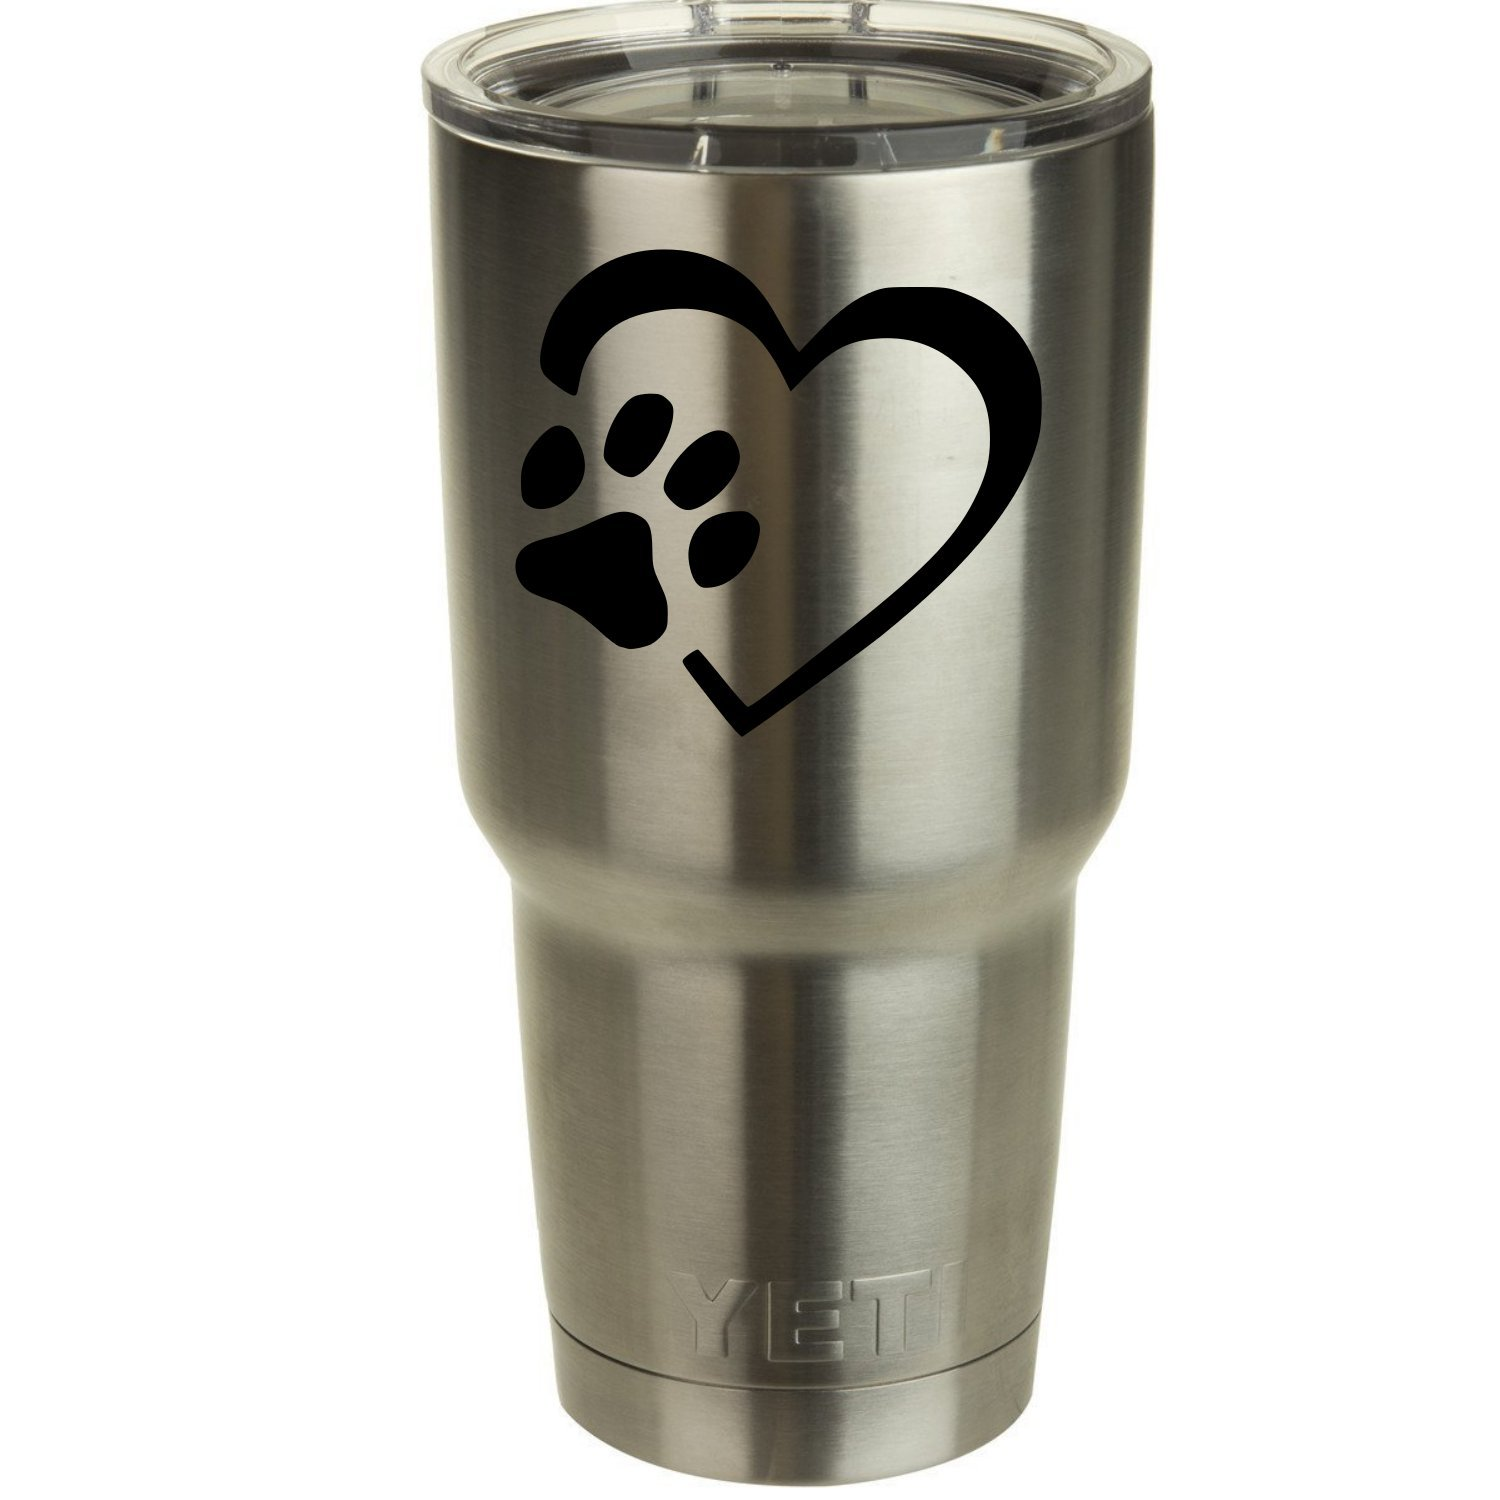 "Heart Paw Love Dogs Decal for Yeti Tumbler Decal Ozark Trail Tumber decal Black or White Decals 4"" H X 3.5"" W"